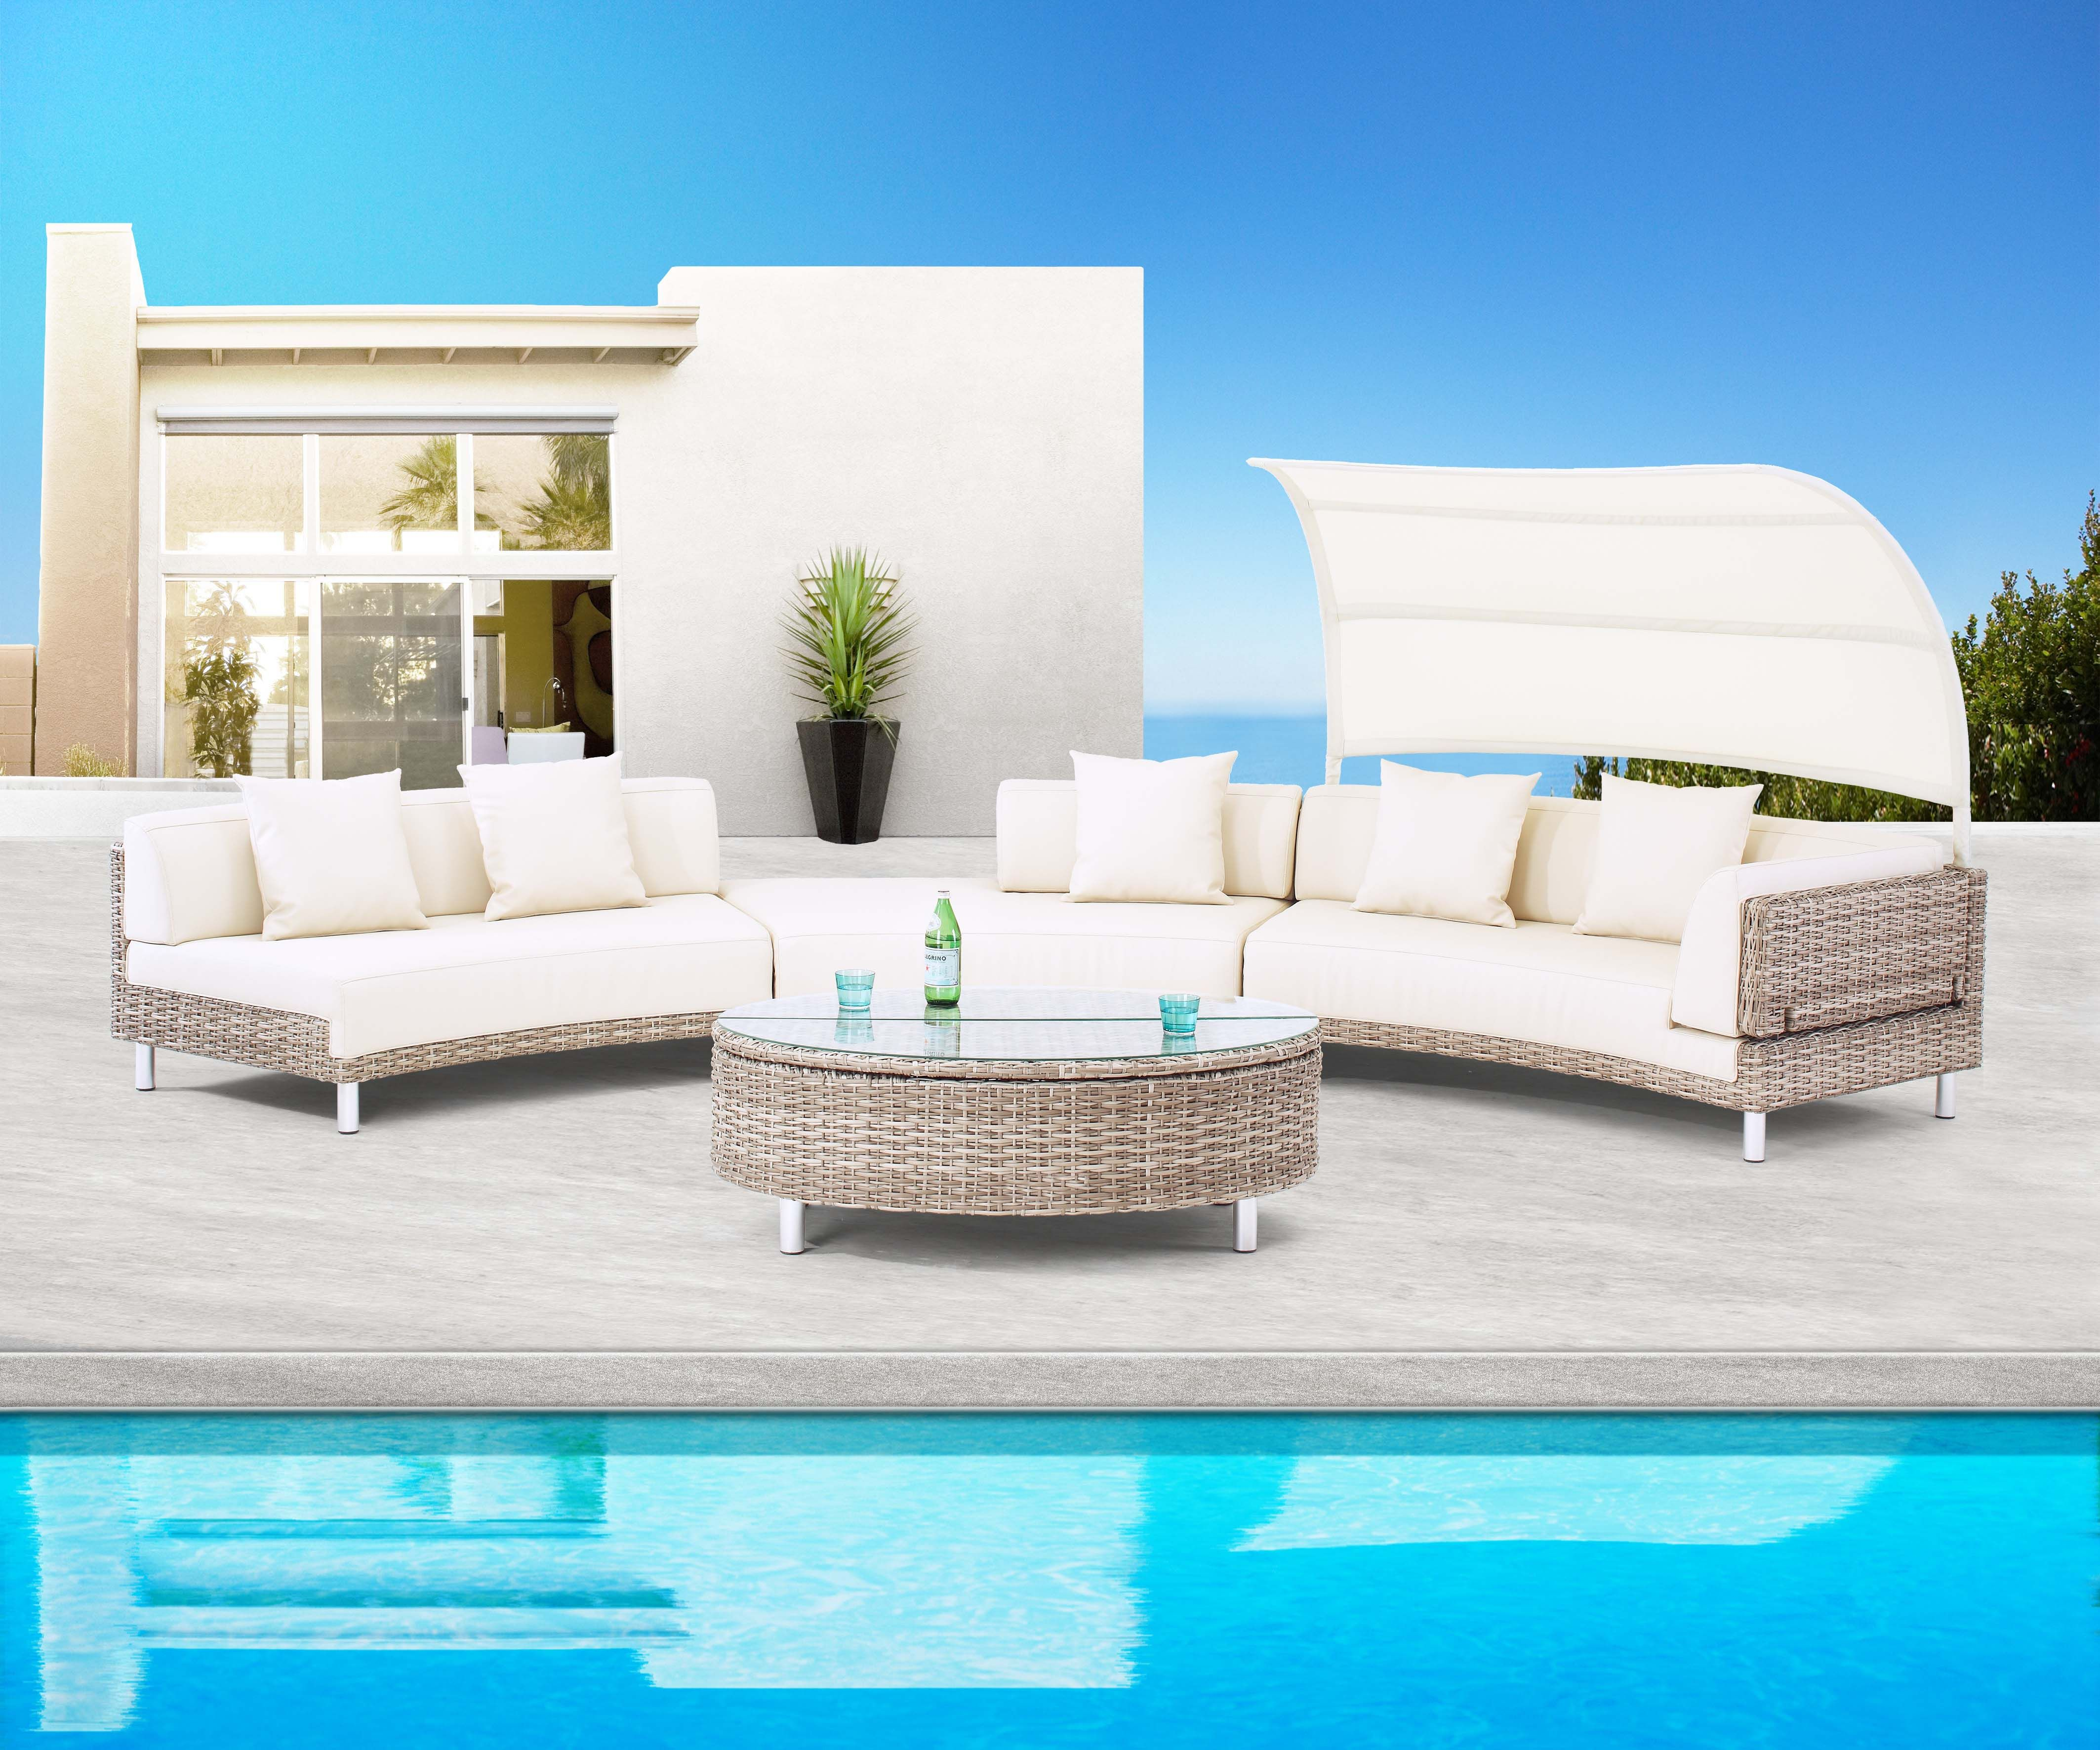 Liegeinsel Outdoor Stylish Outdoor Sofa Set From Fiore Rosso Lavanda Collection